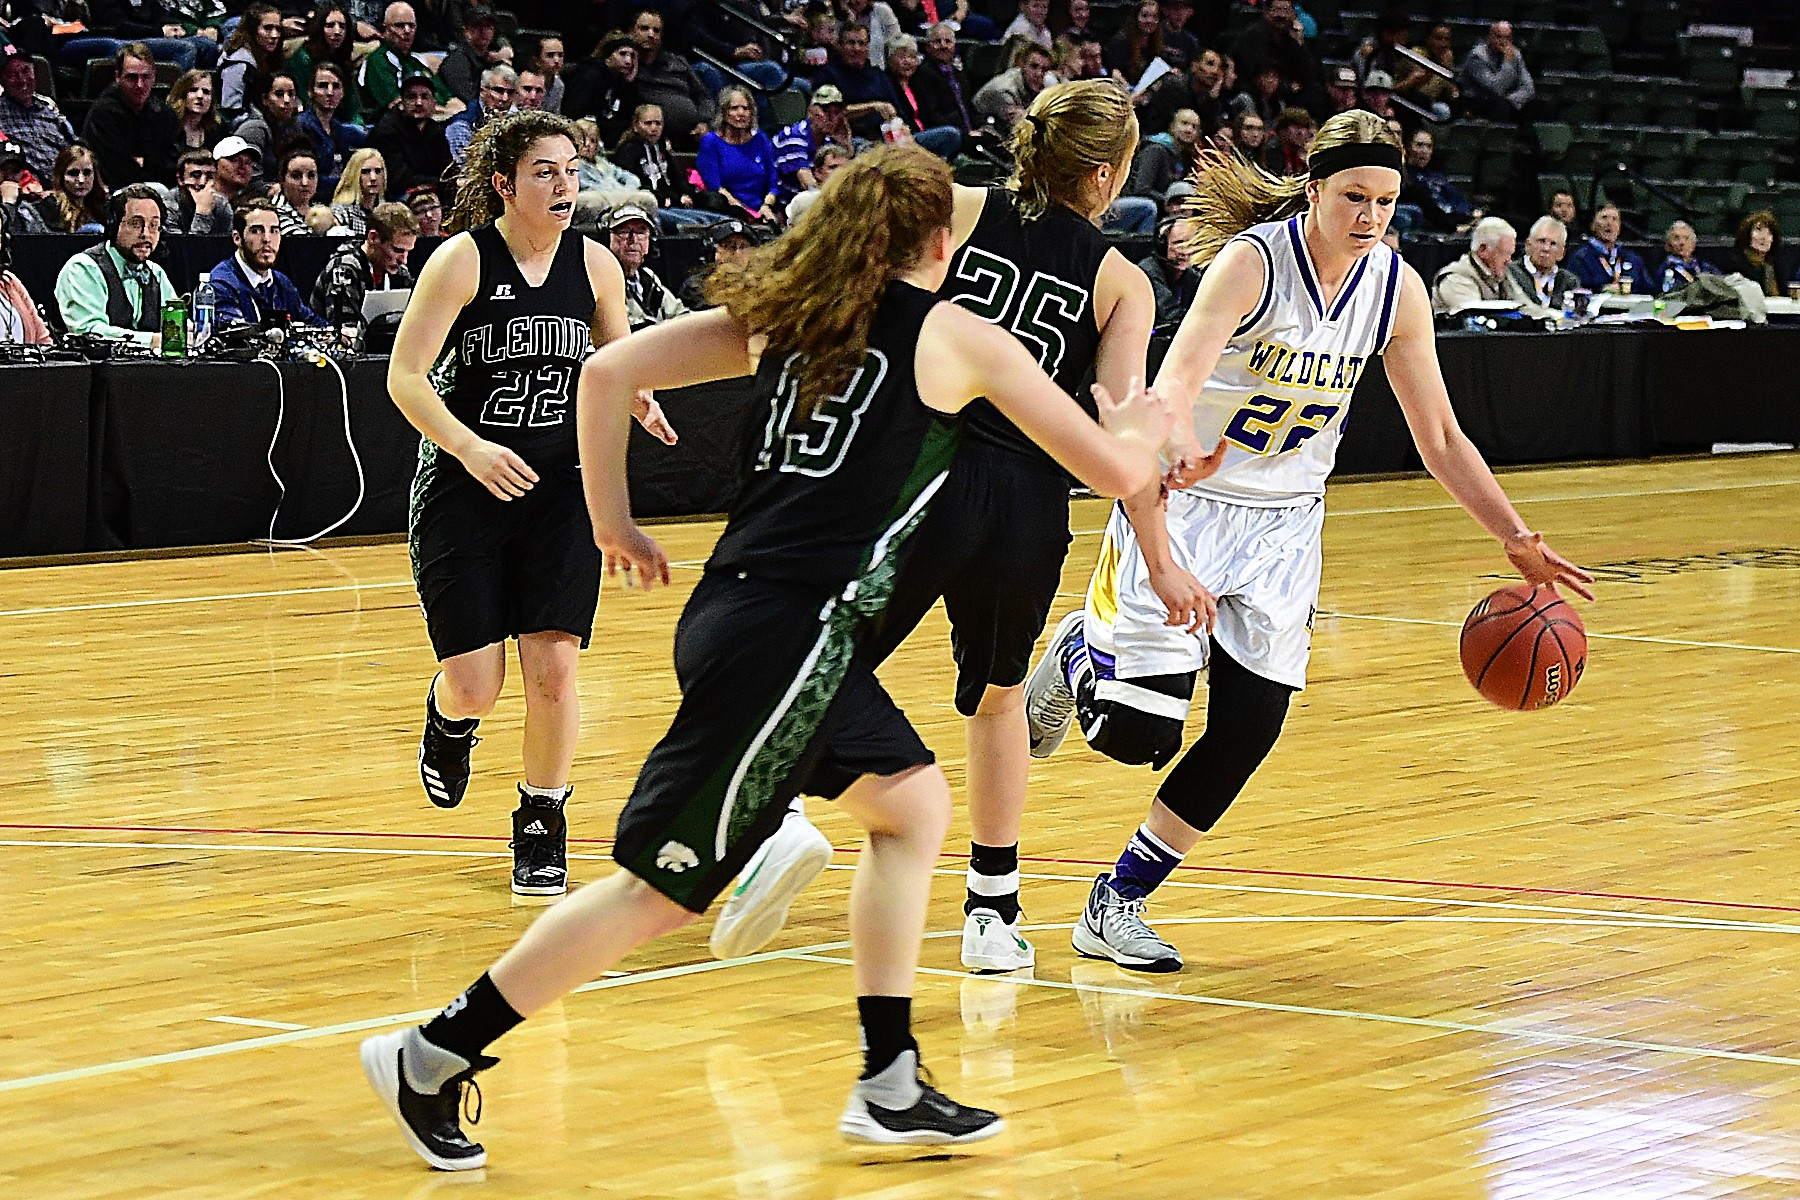 MiCayla Isenbart and the Kit Carson Wildcats versus Fleming at the State Championship Game - Photo Credit Bob Schecter